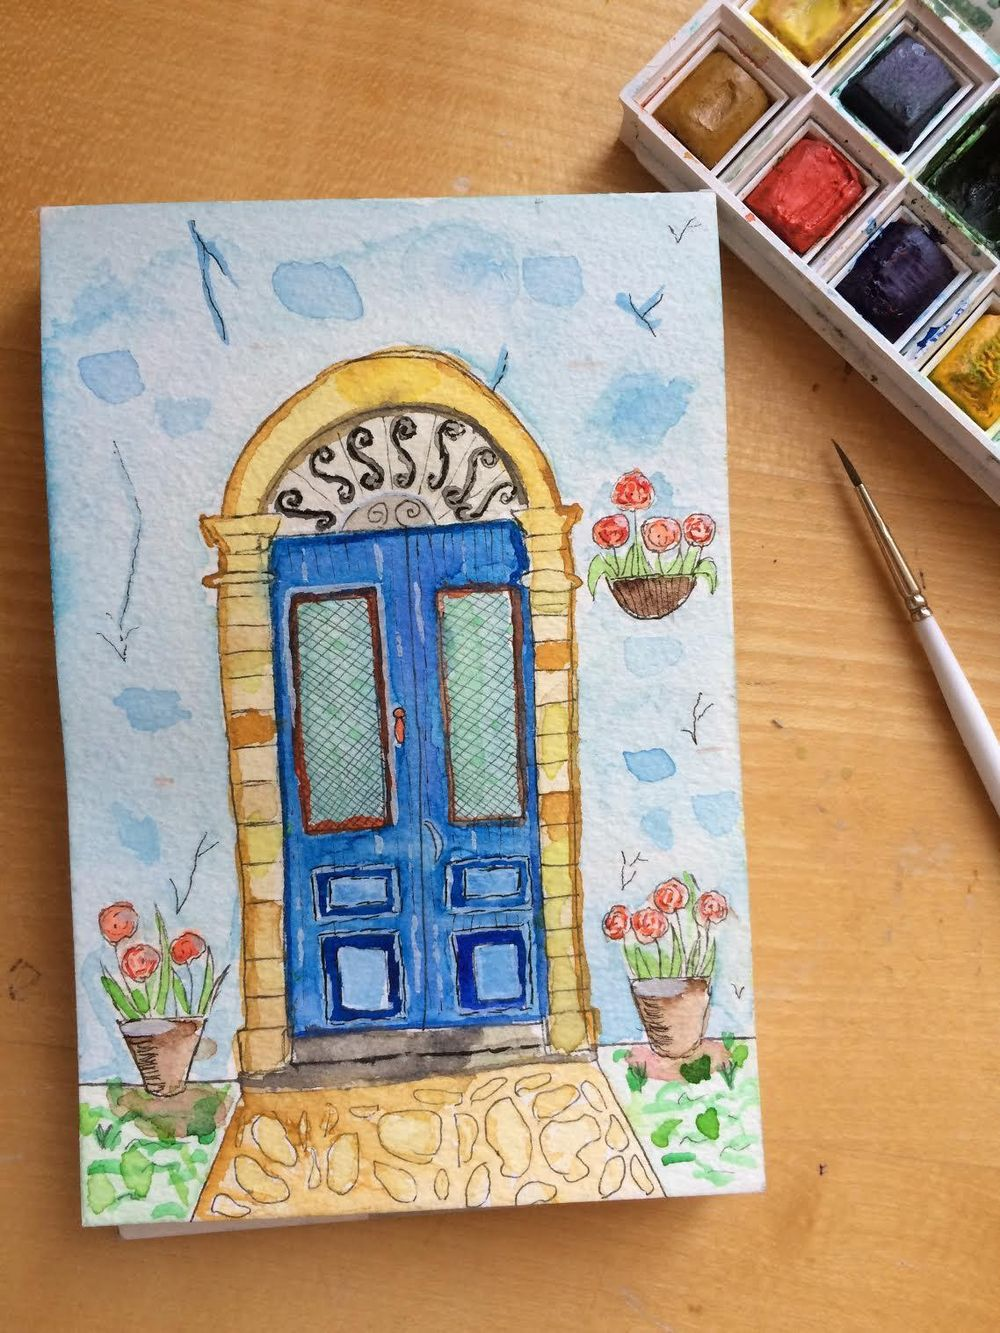 My doors - image 1 - student project